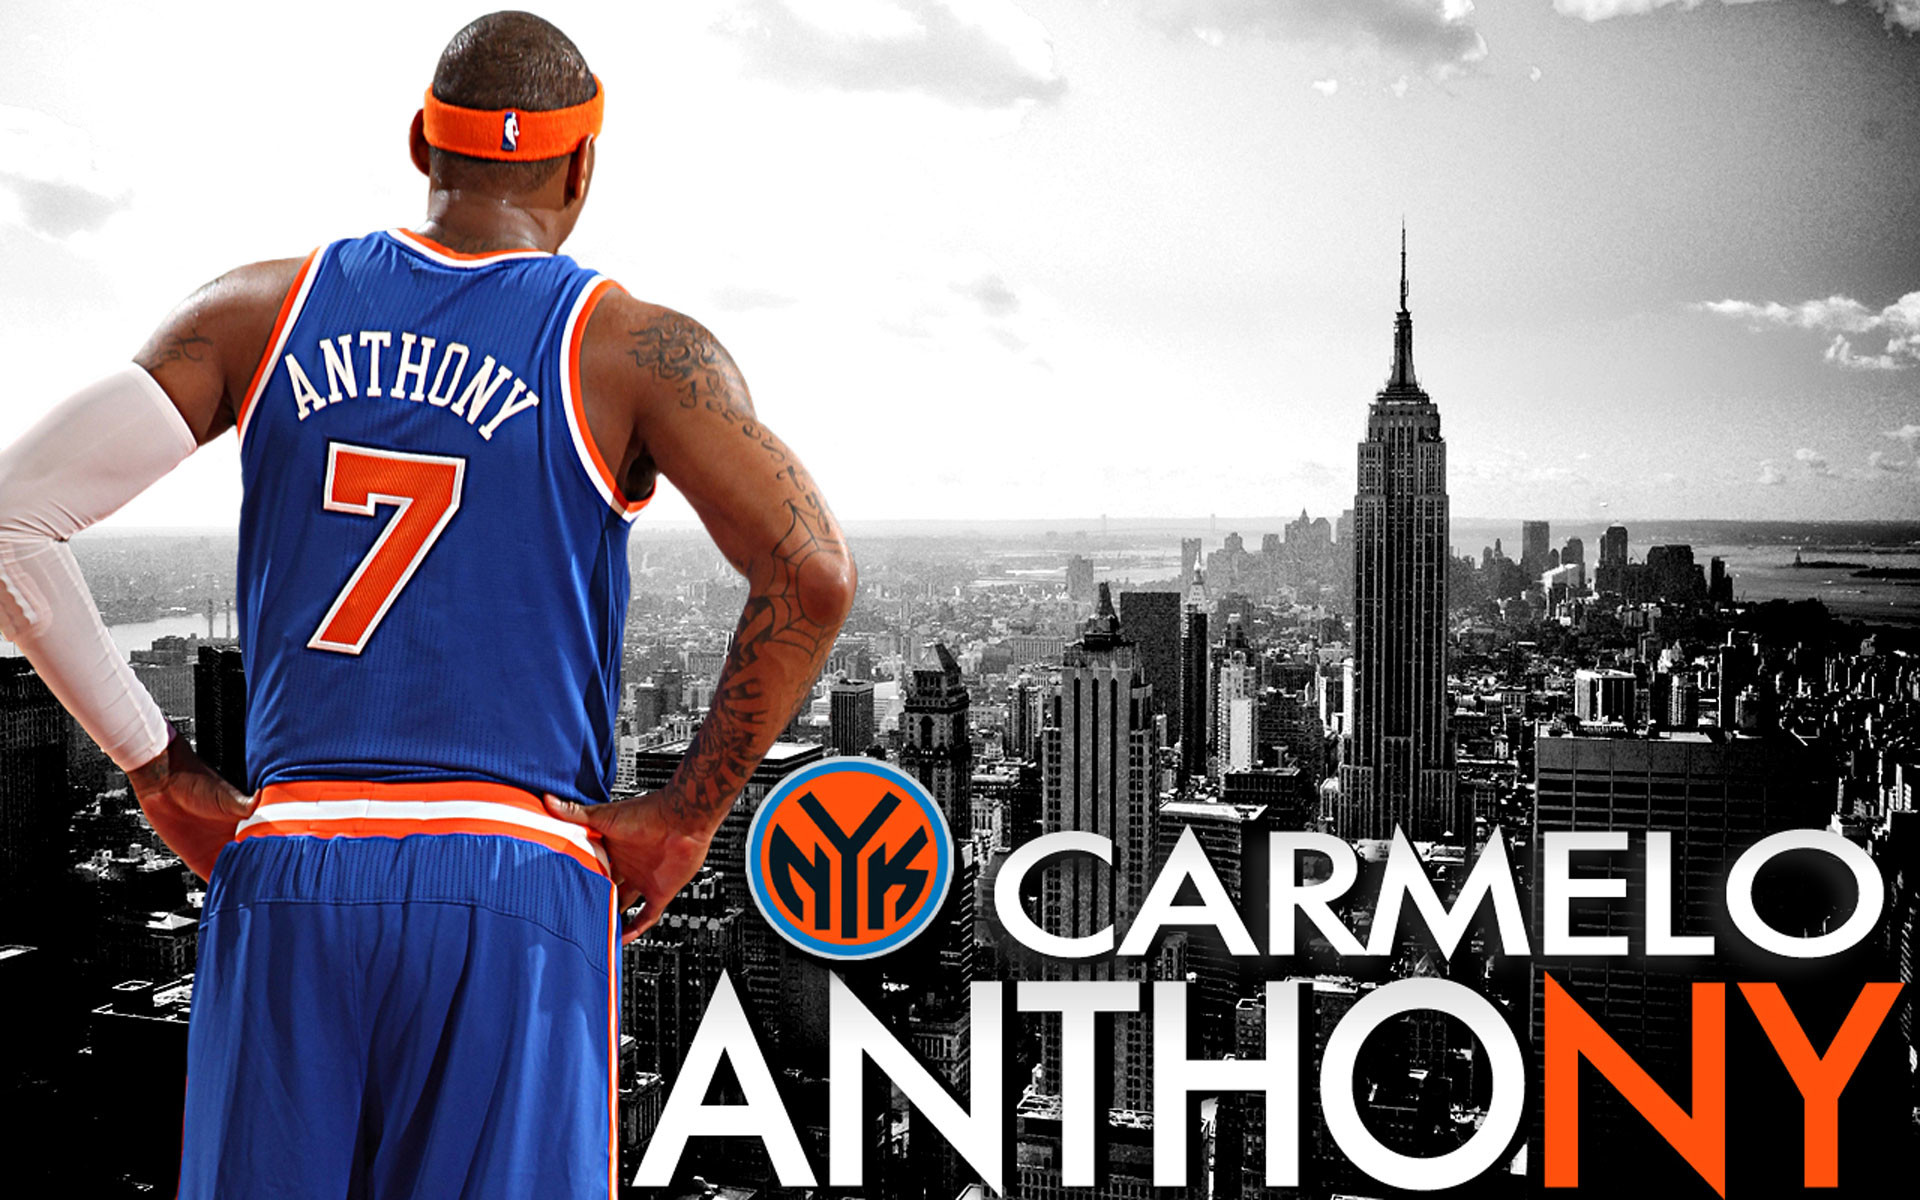 1920x1200 Carmelo Anthony New York Knicks Wallpaper Carmelo Anthony Knicks Wall